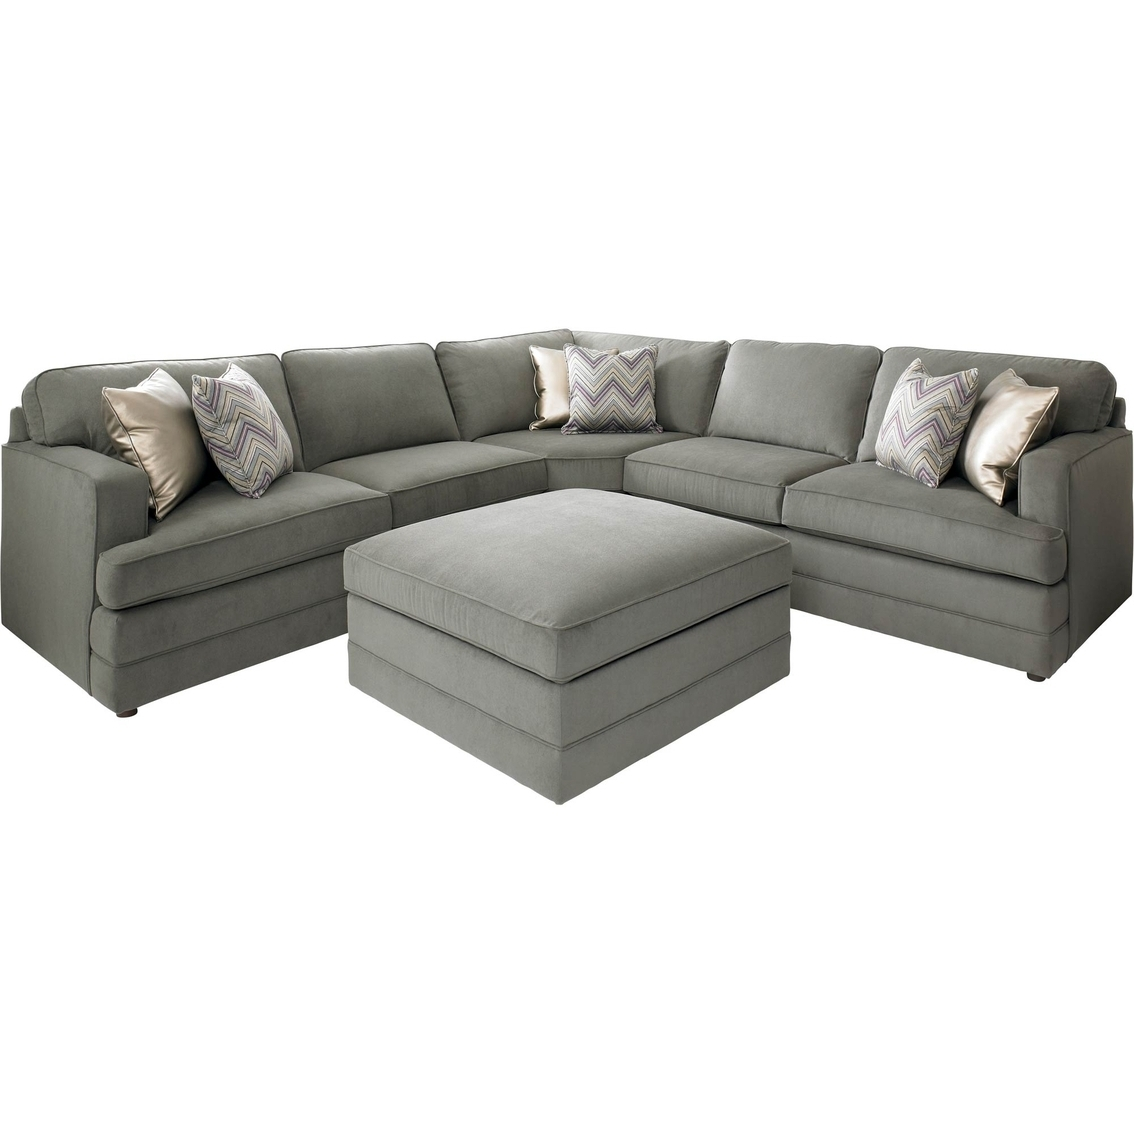 Recent Bassett Dalton L Shaped Sectional Sofa With Ottoman (View 10 of 20)